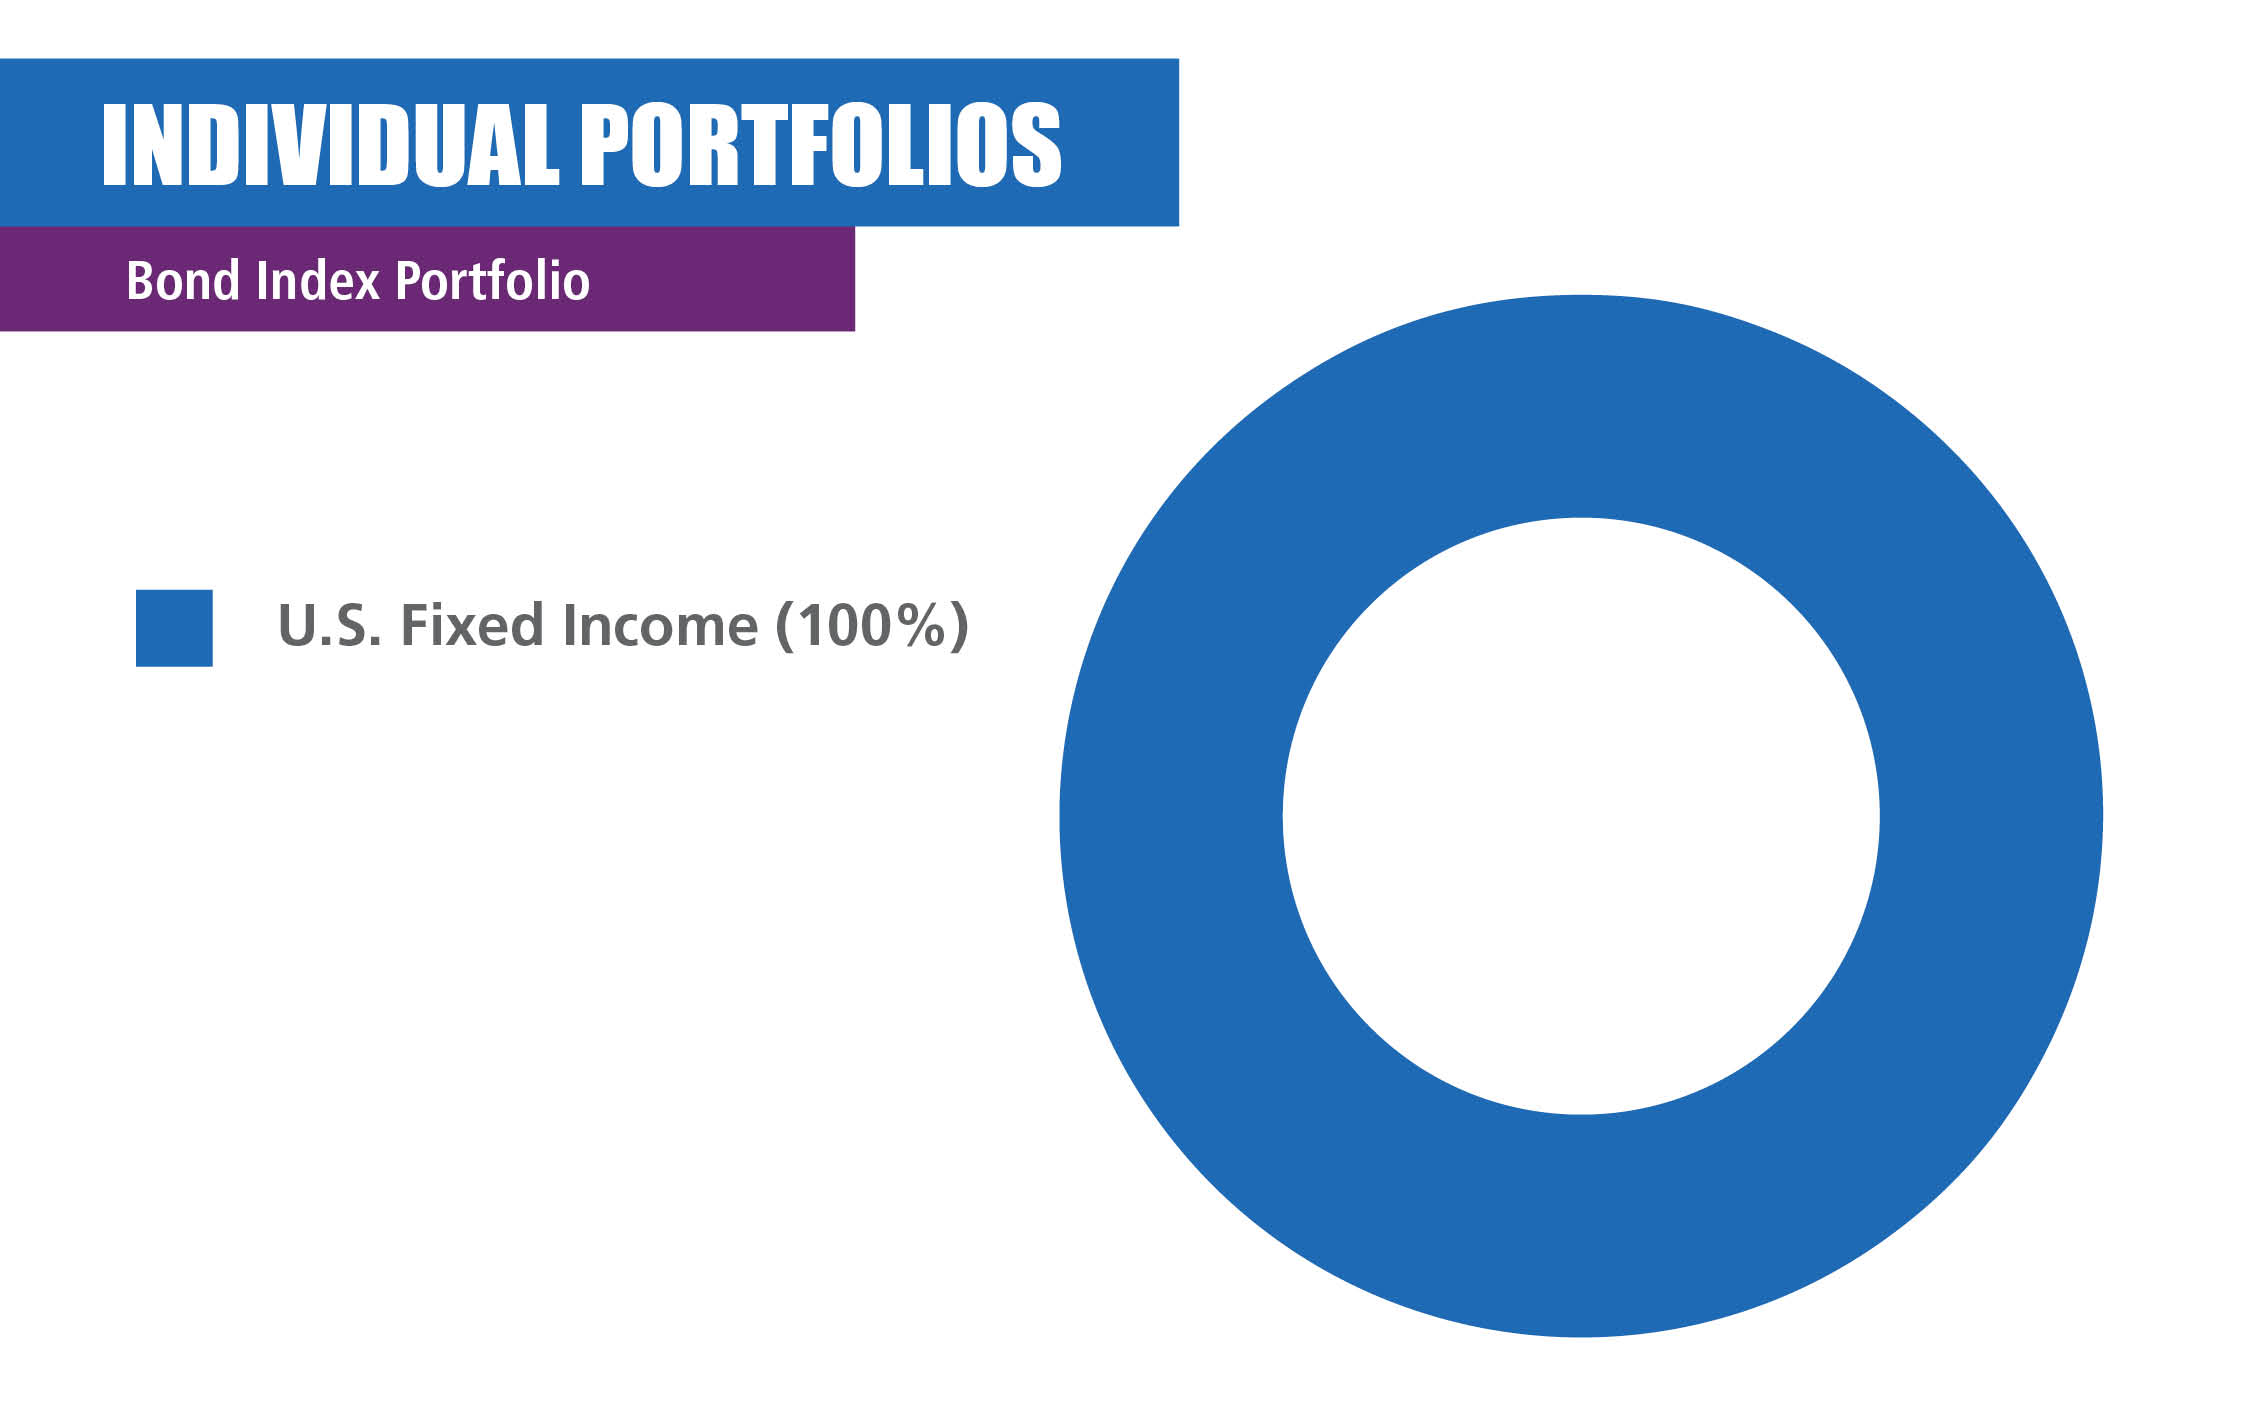 Bond Index Portfolio